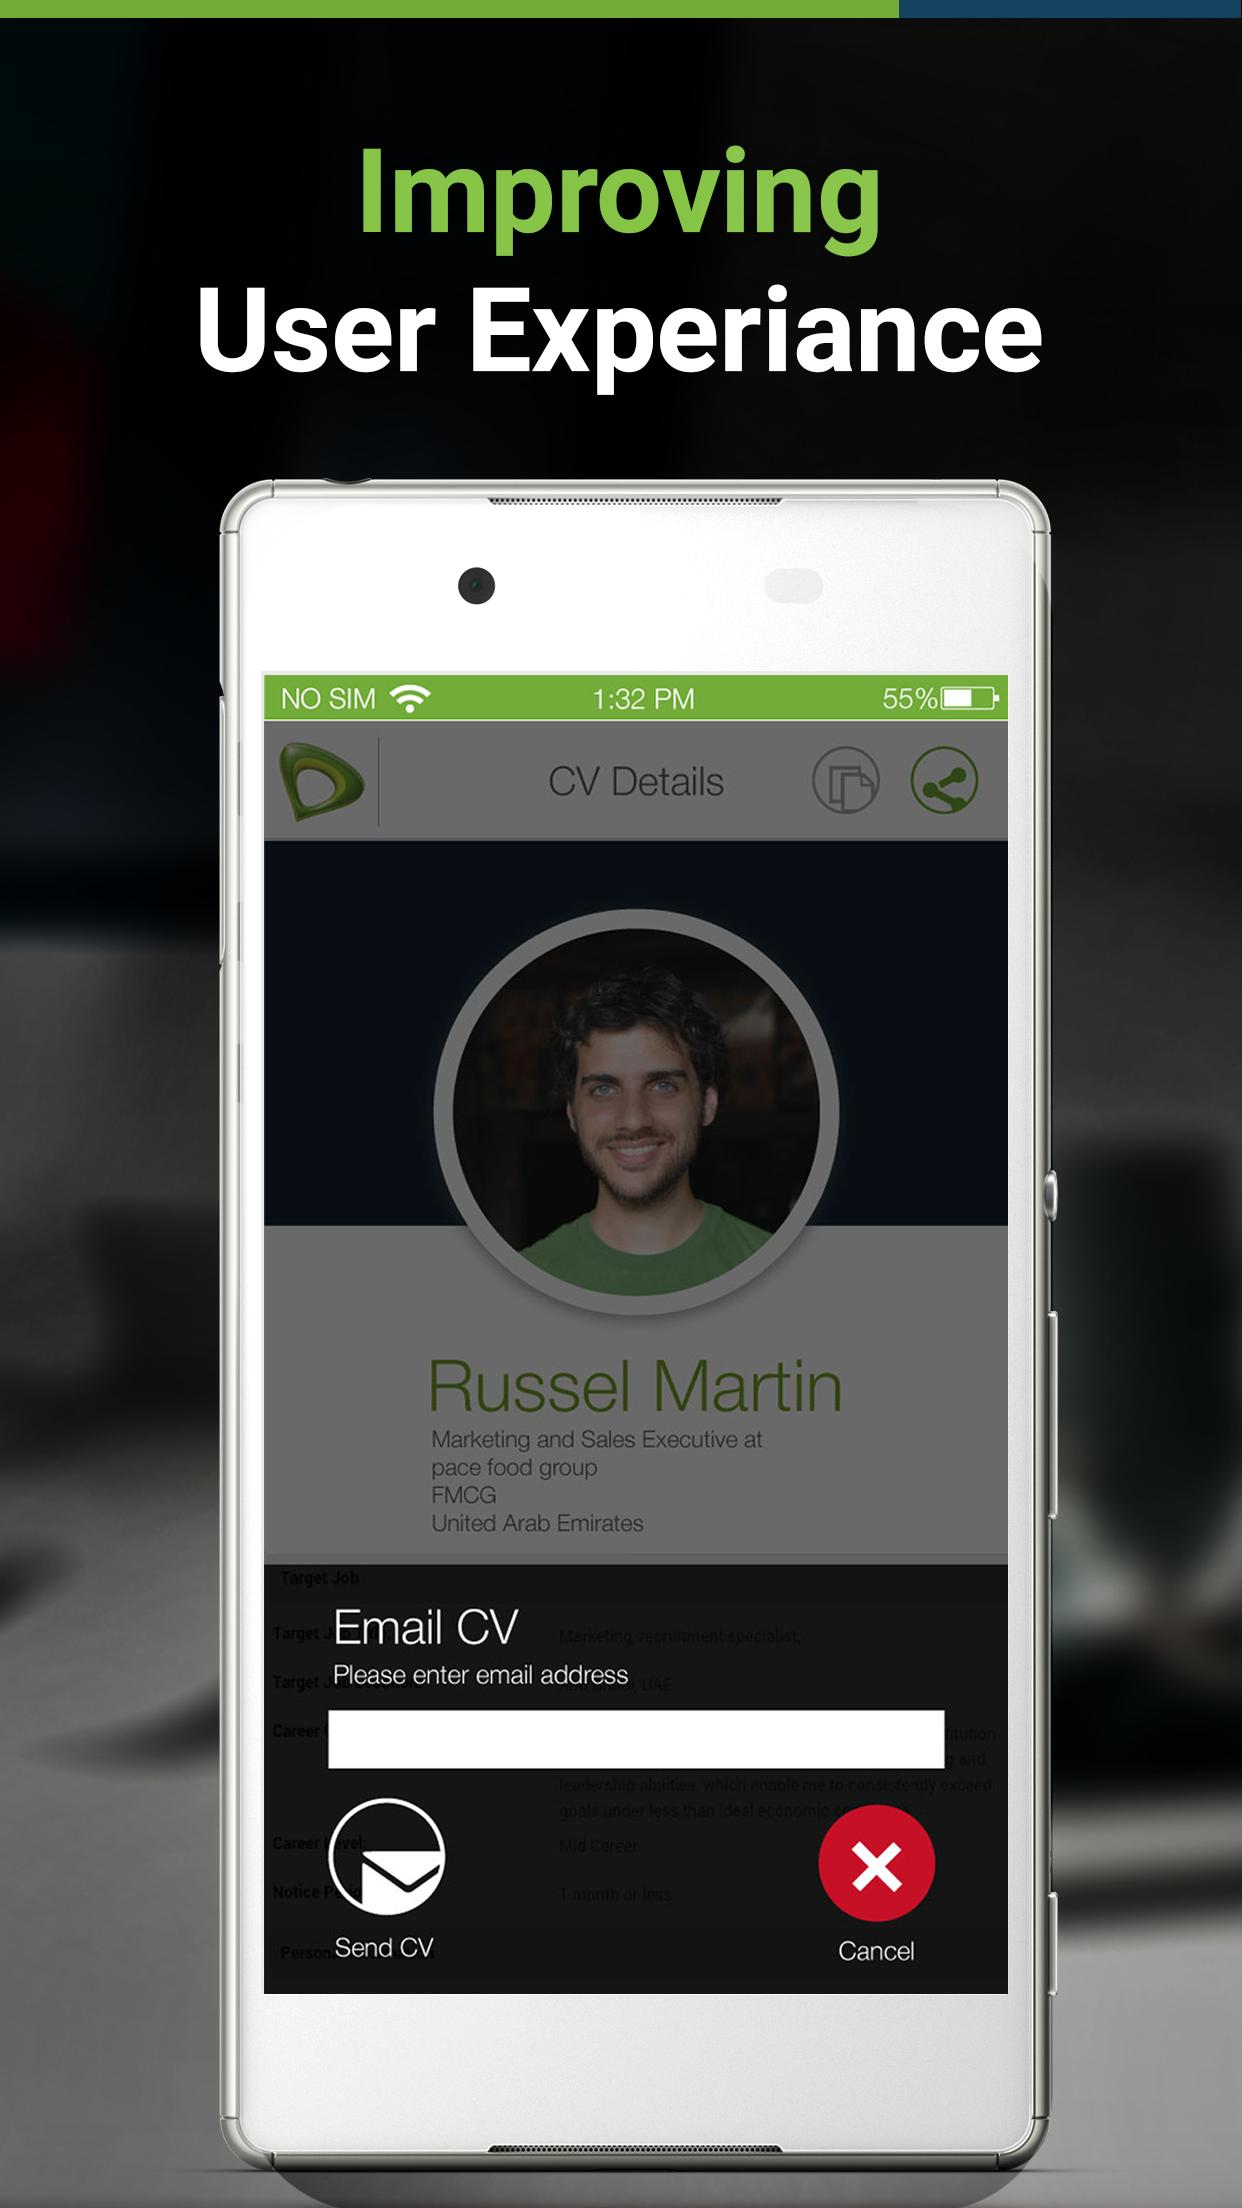 Etisalat Misr Careers for Android - APK Download